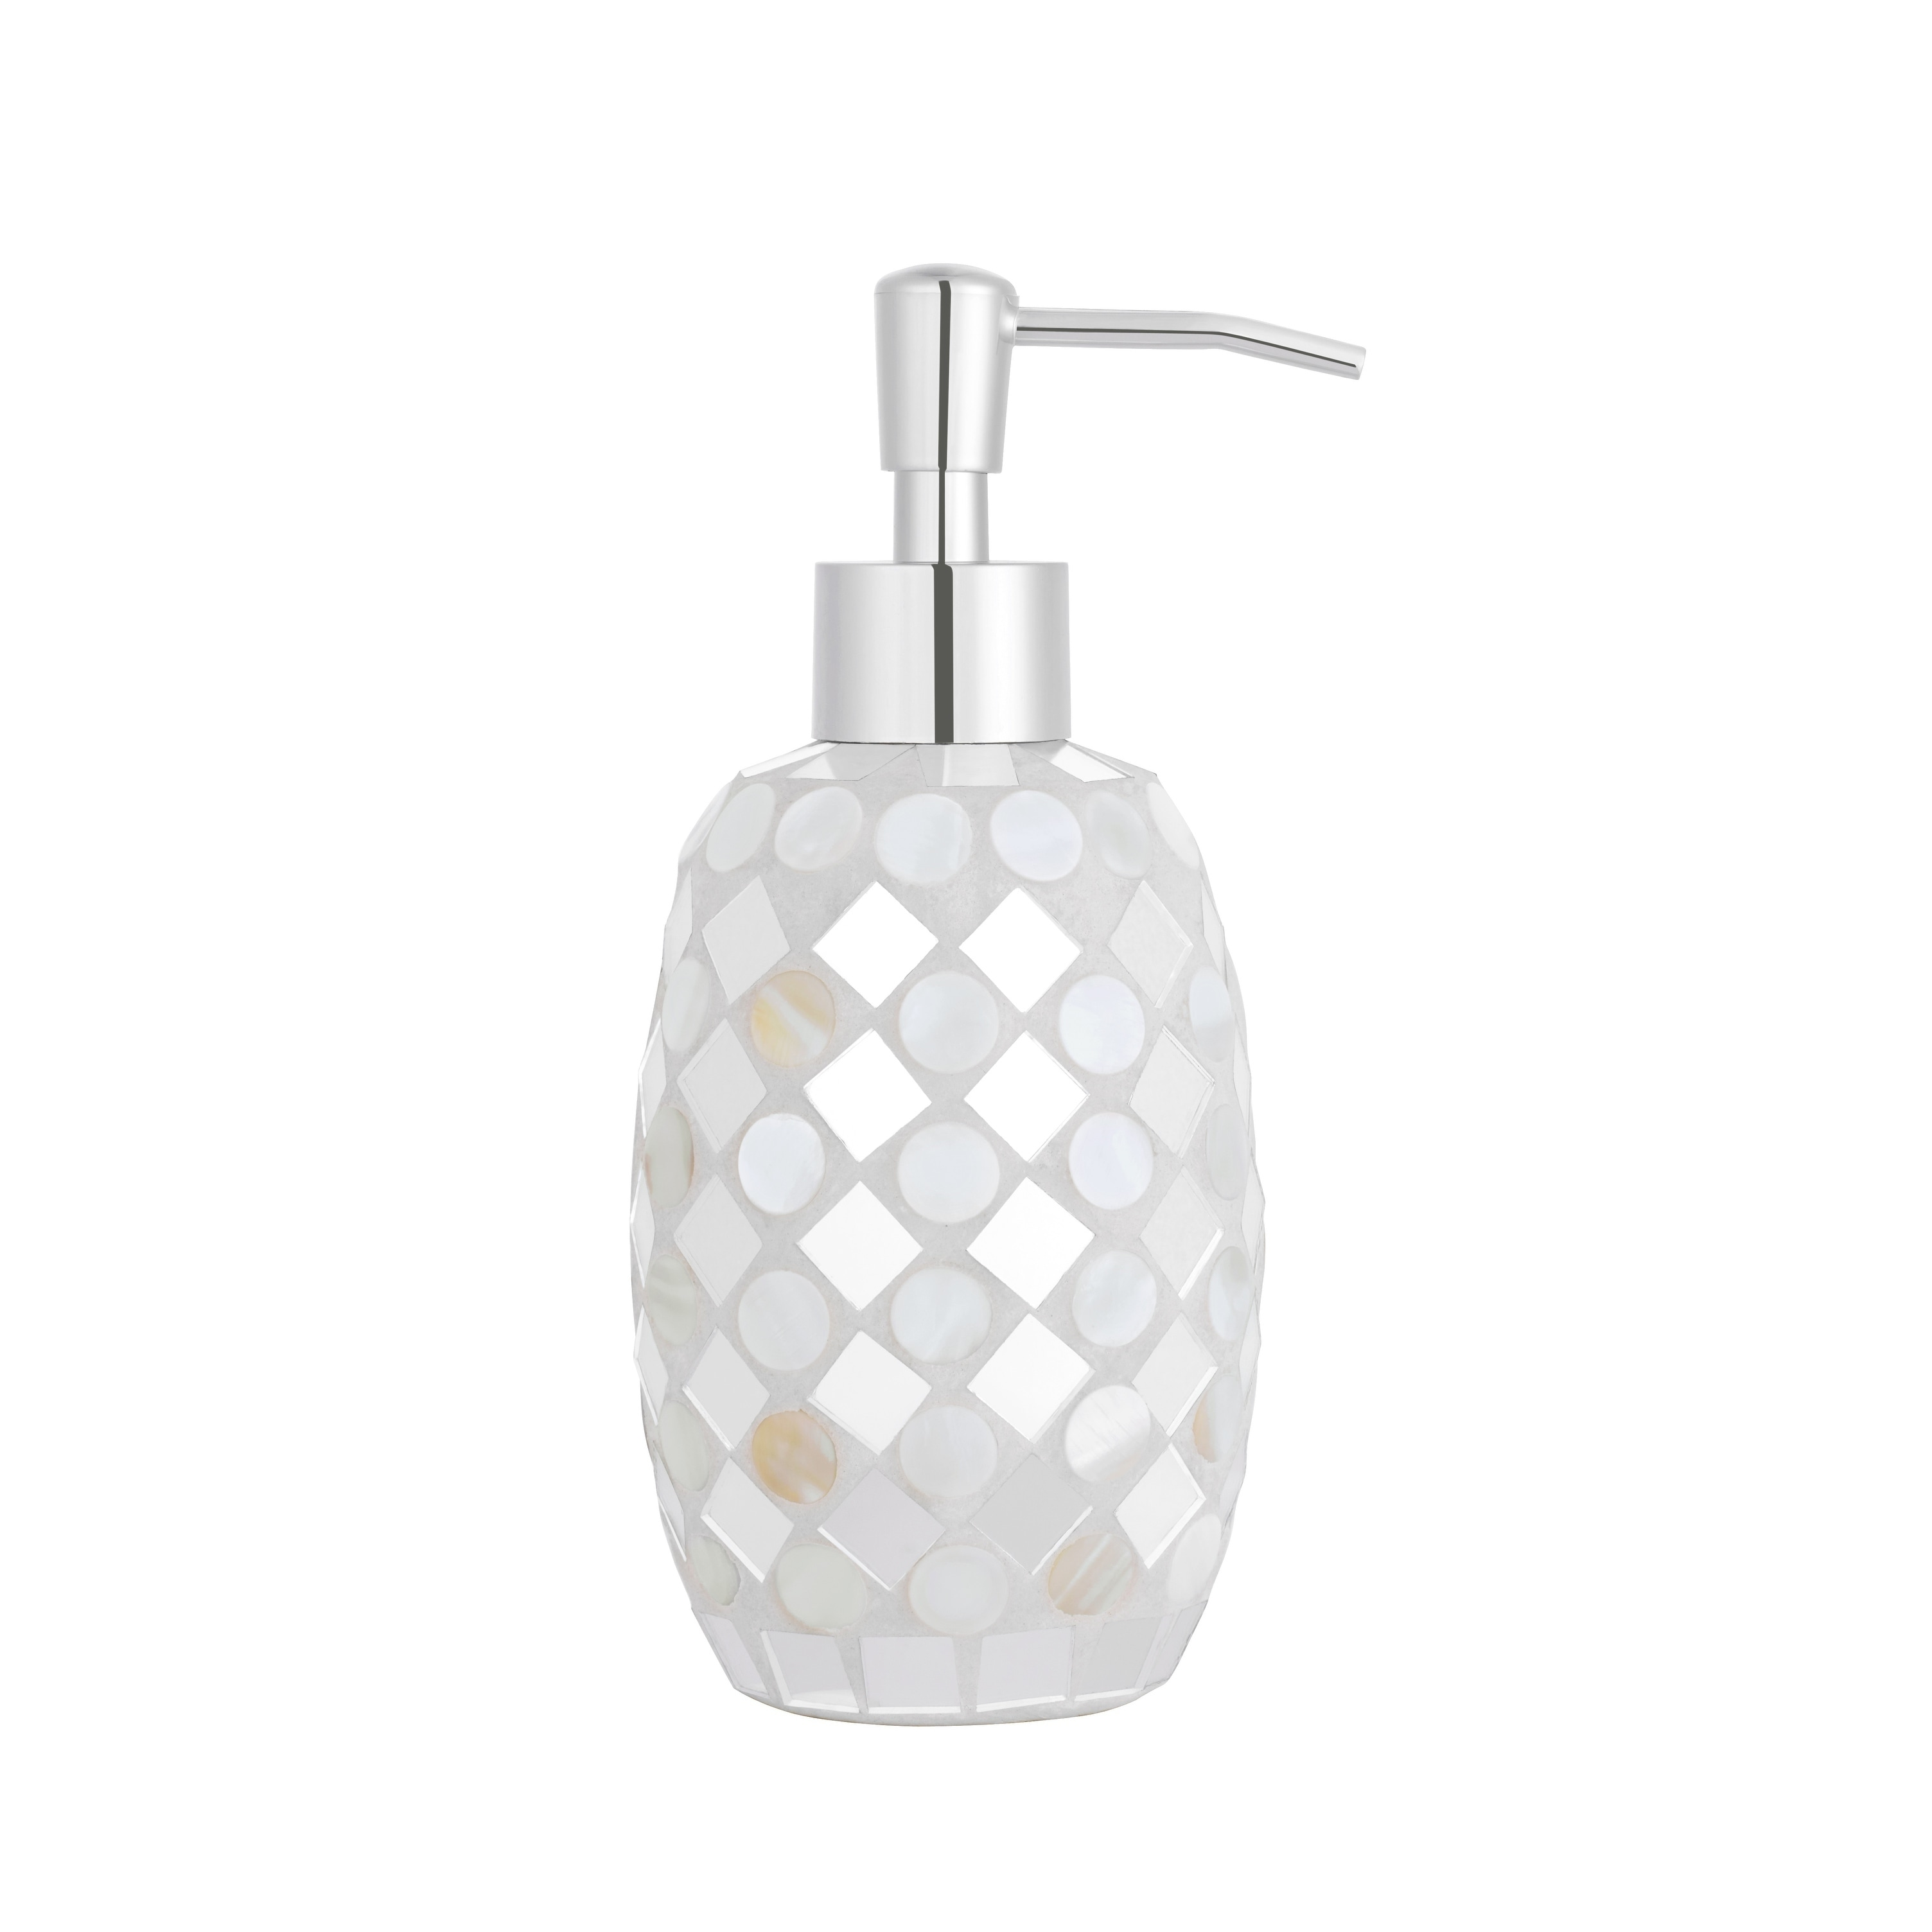 Five Queens Court Mercer Mosaic Bathroom Accessories Collection   Free  Shipping On Orders Over $45   Overstock.com   24171613